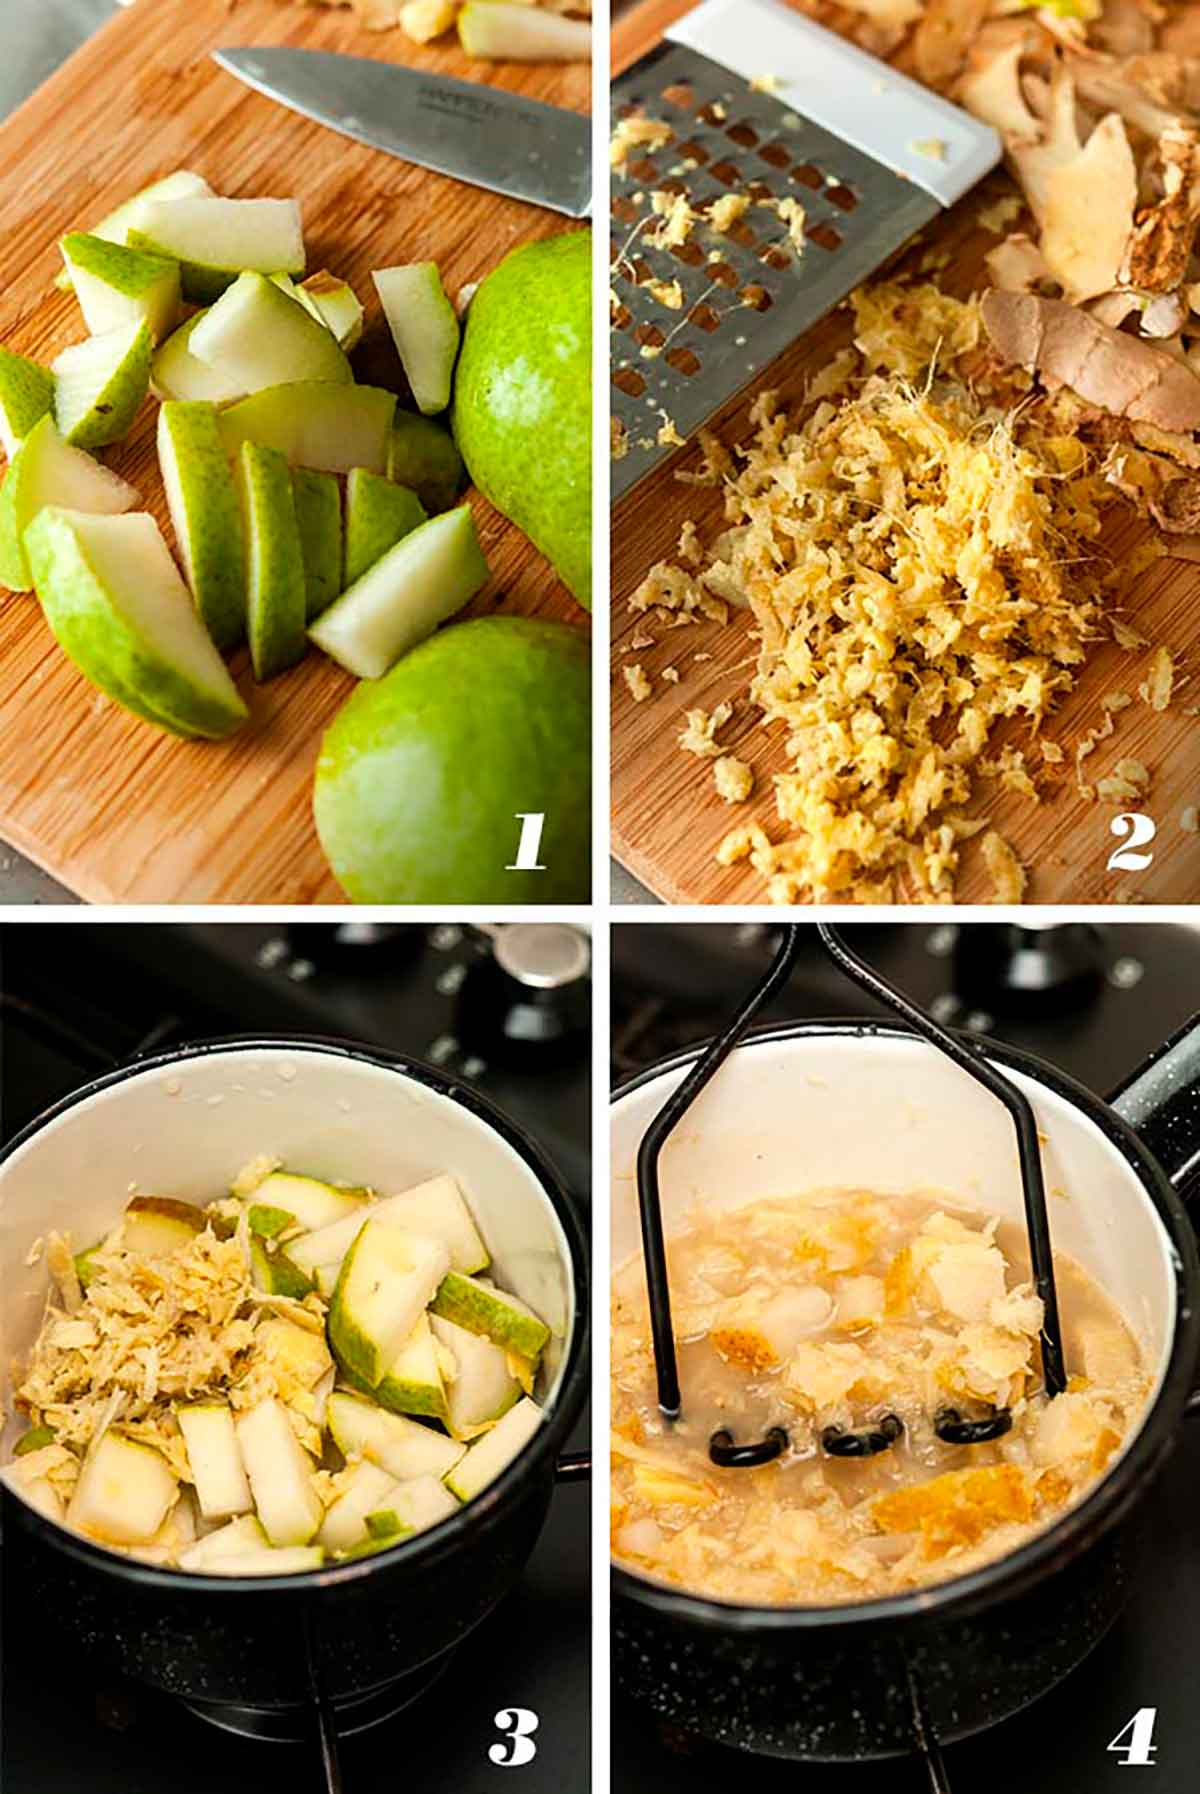 A collage of 4 numbered images showing how to make pear-ginger syrup.